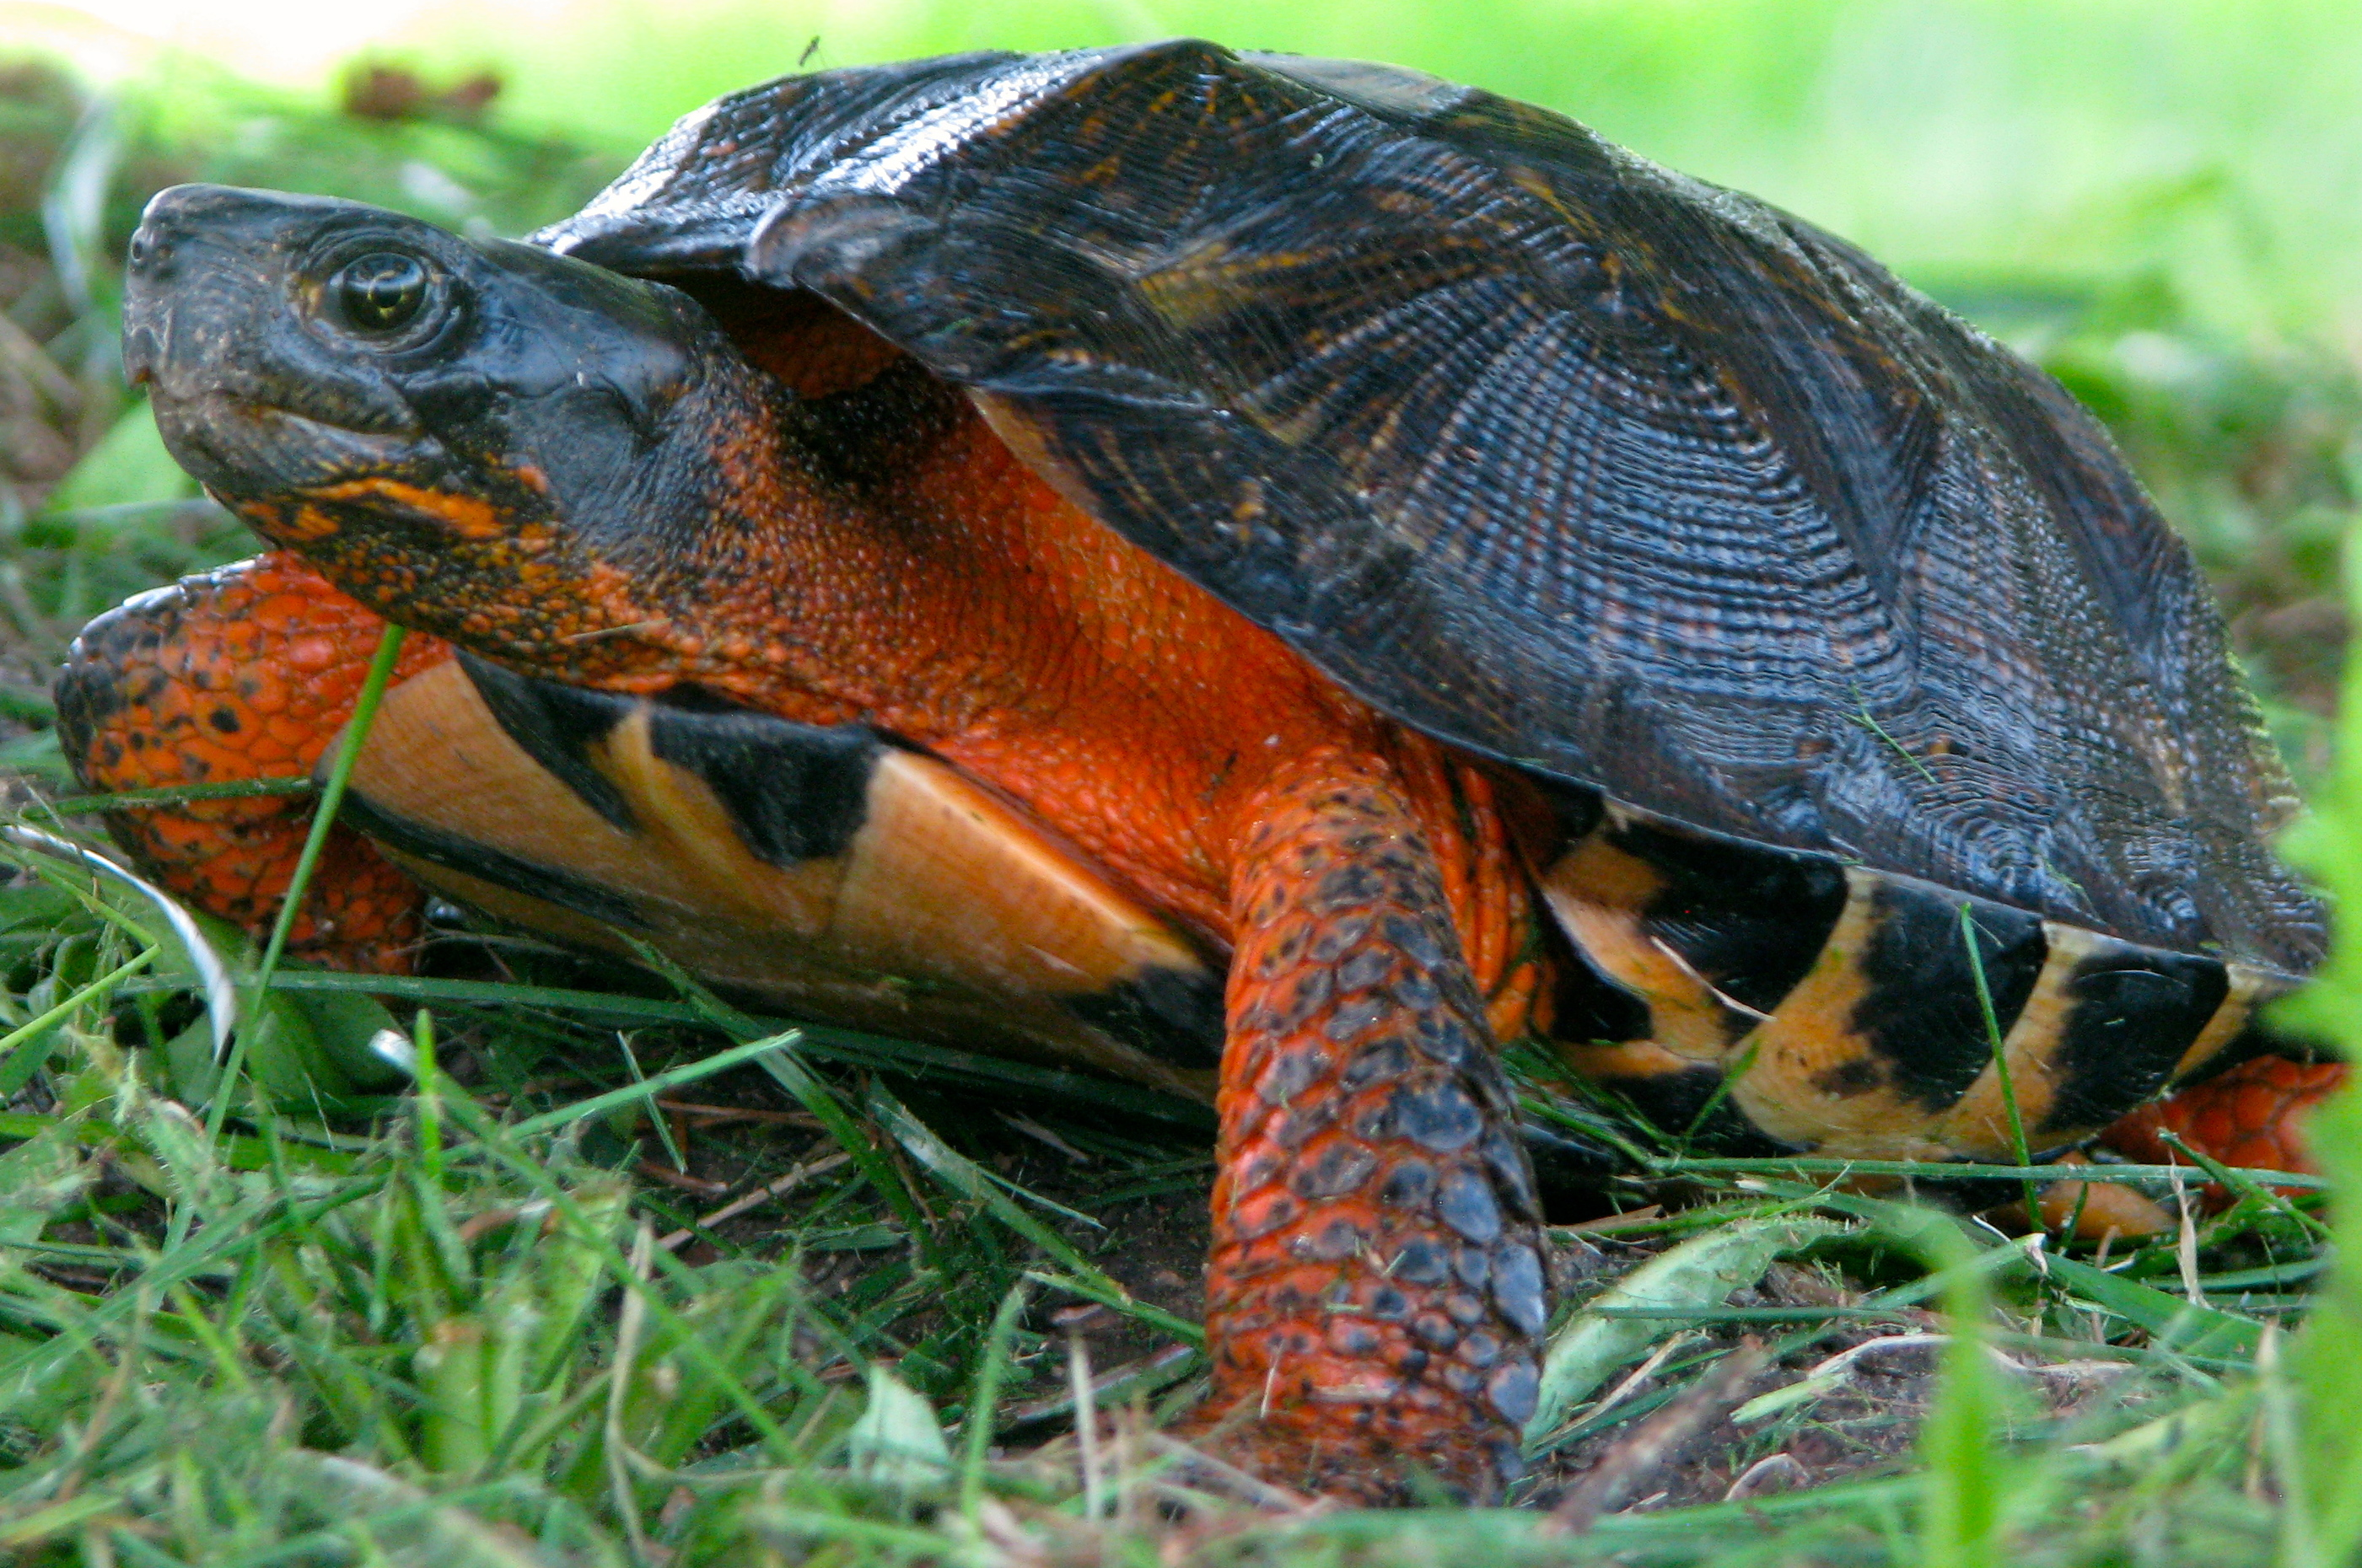 A photo of a Wood Turtle.